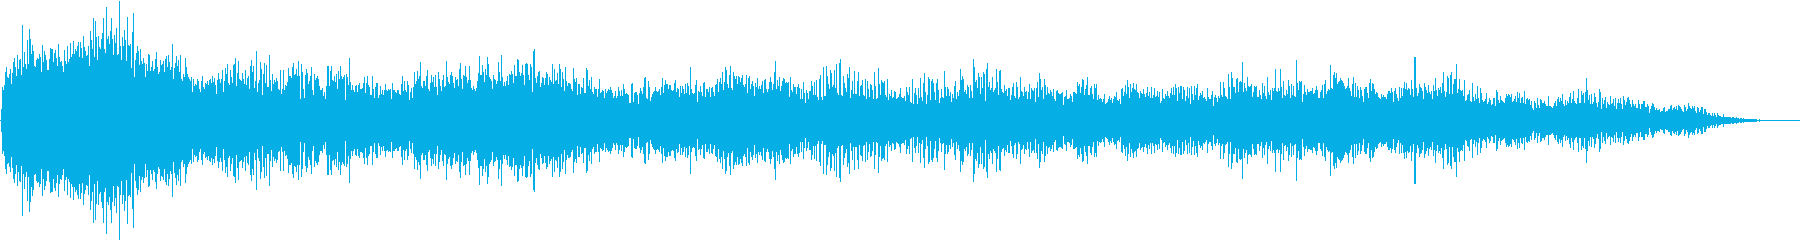 Noise sound source 06 that seems to appear in horror films's reproduced waveform